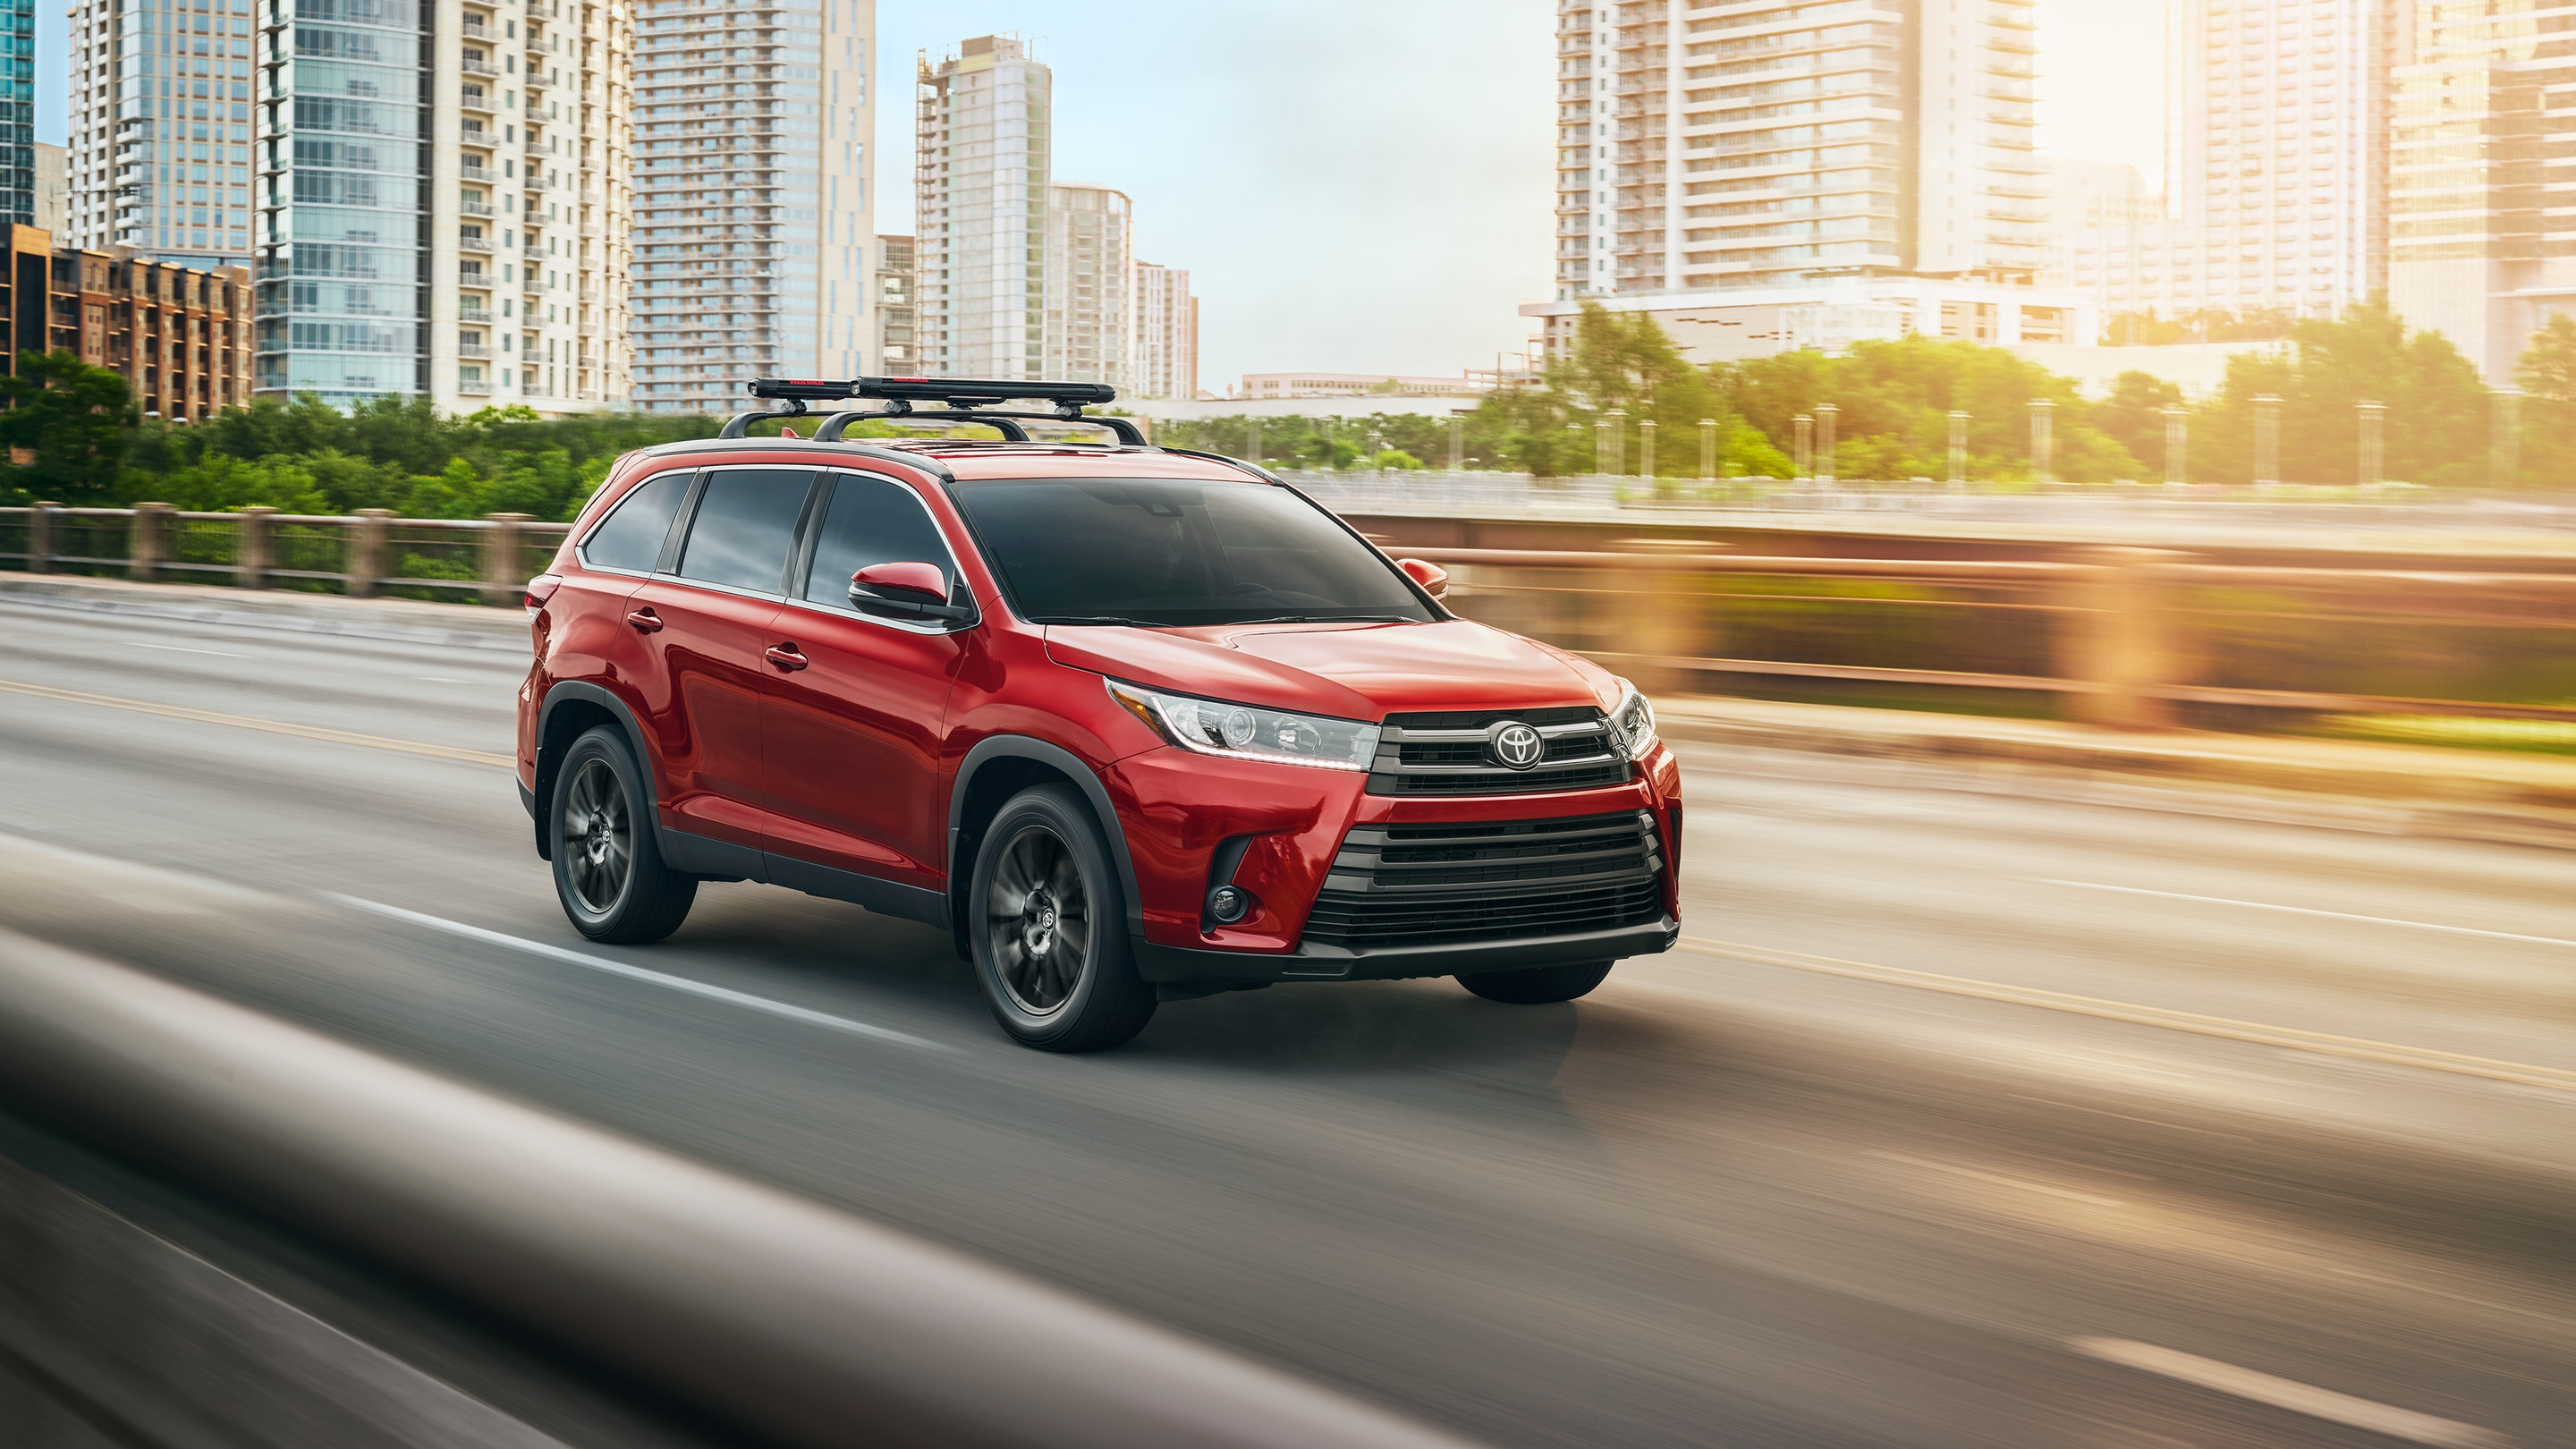 2019 Toyota Highlander for Sale near Glen Mills, PA